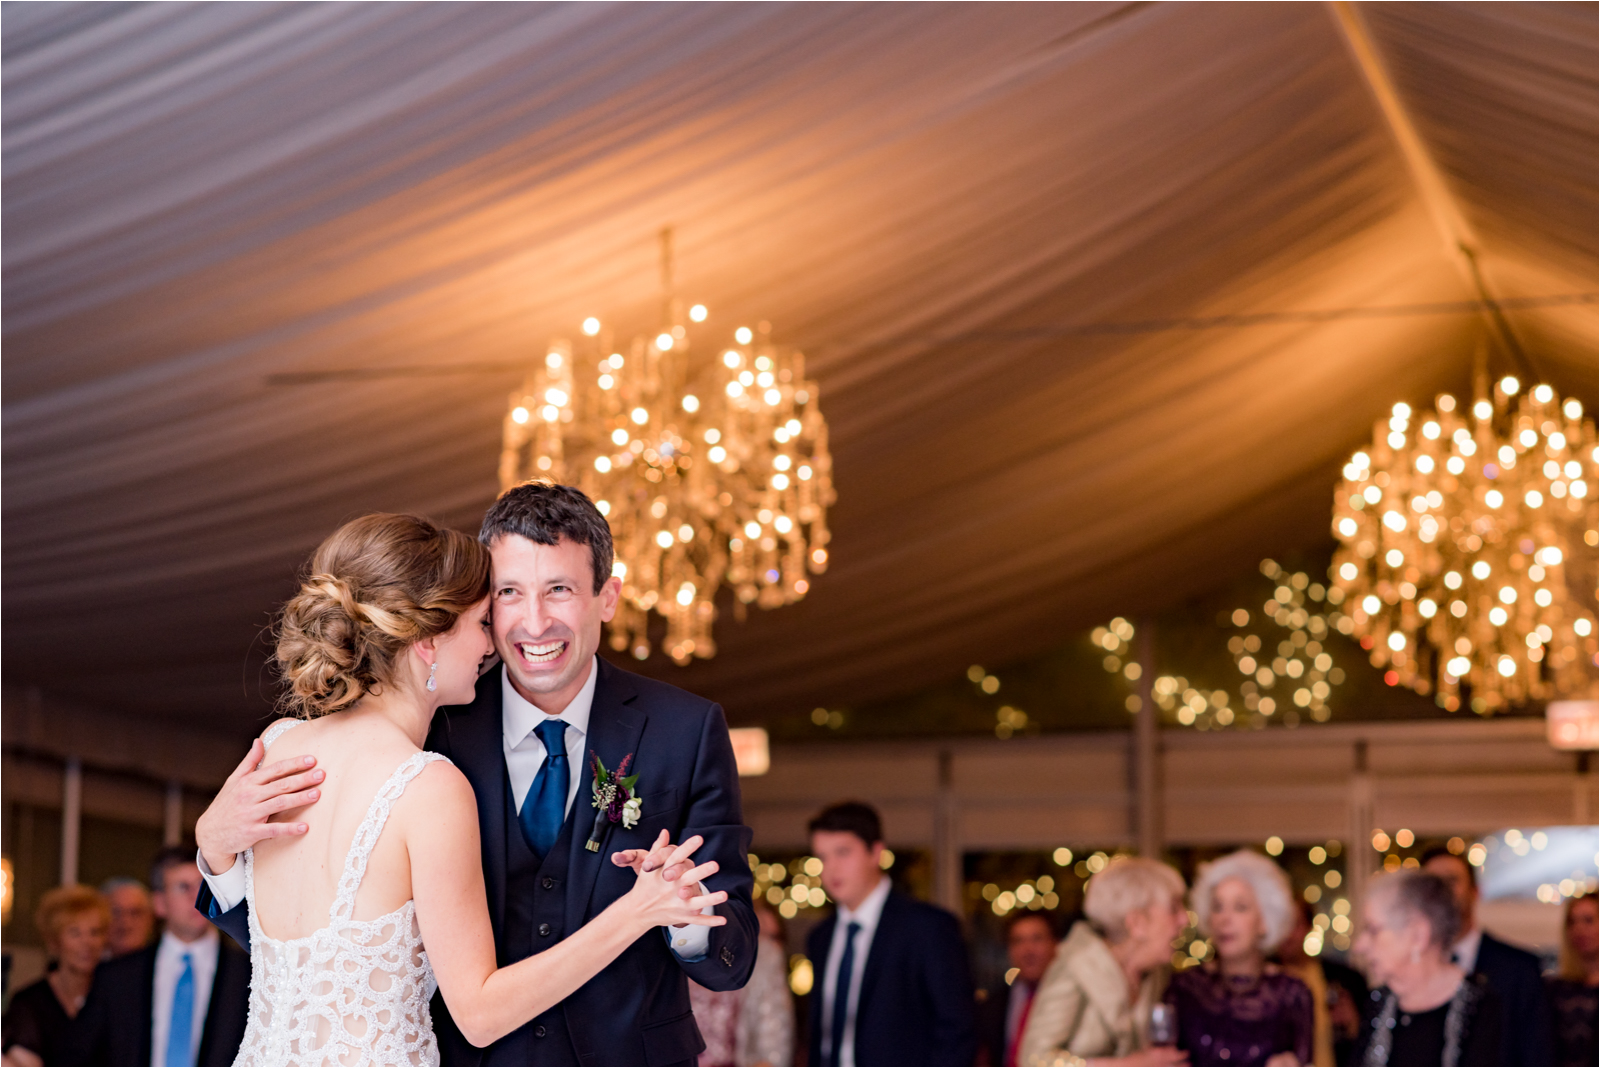 wedding-day-destination wedding photographer-destination-photographer-chicago-illinois-malone-bubman-galleria-marchetti-jessica-capozzola-focus-on-joy-photography-first-dance-bride-groom